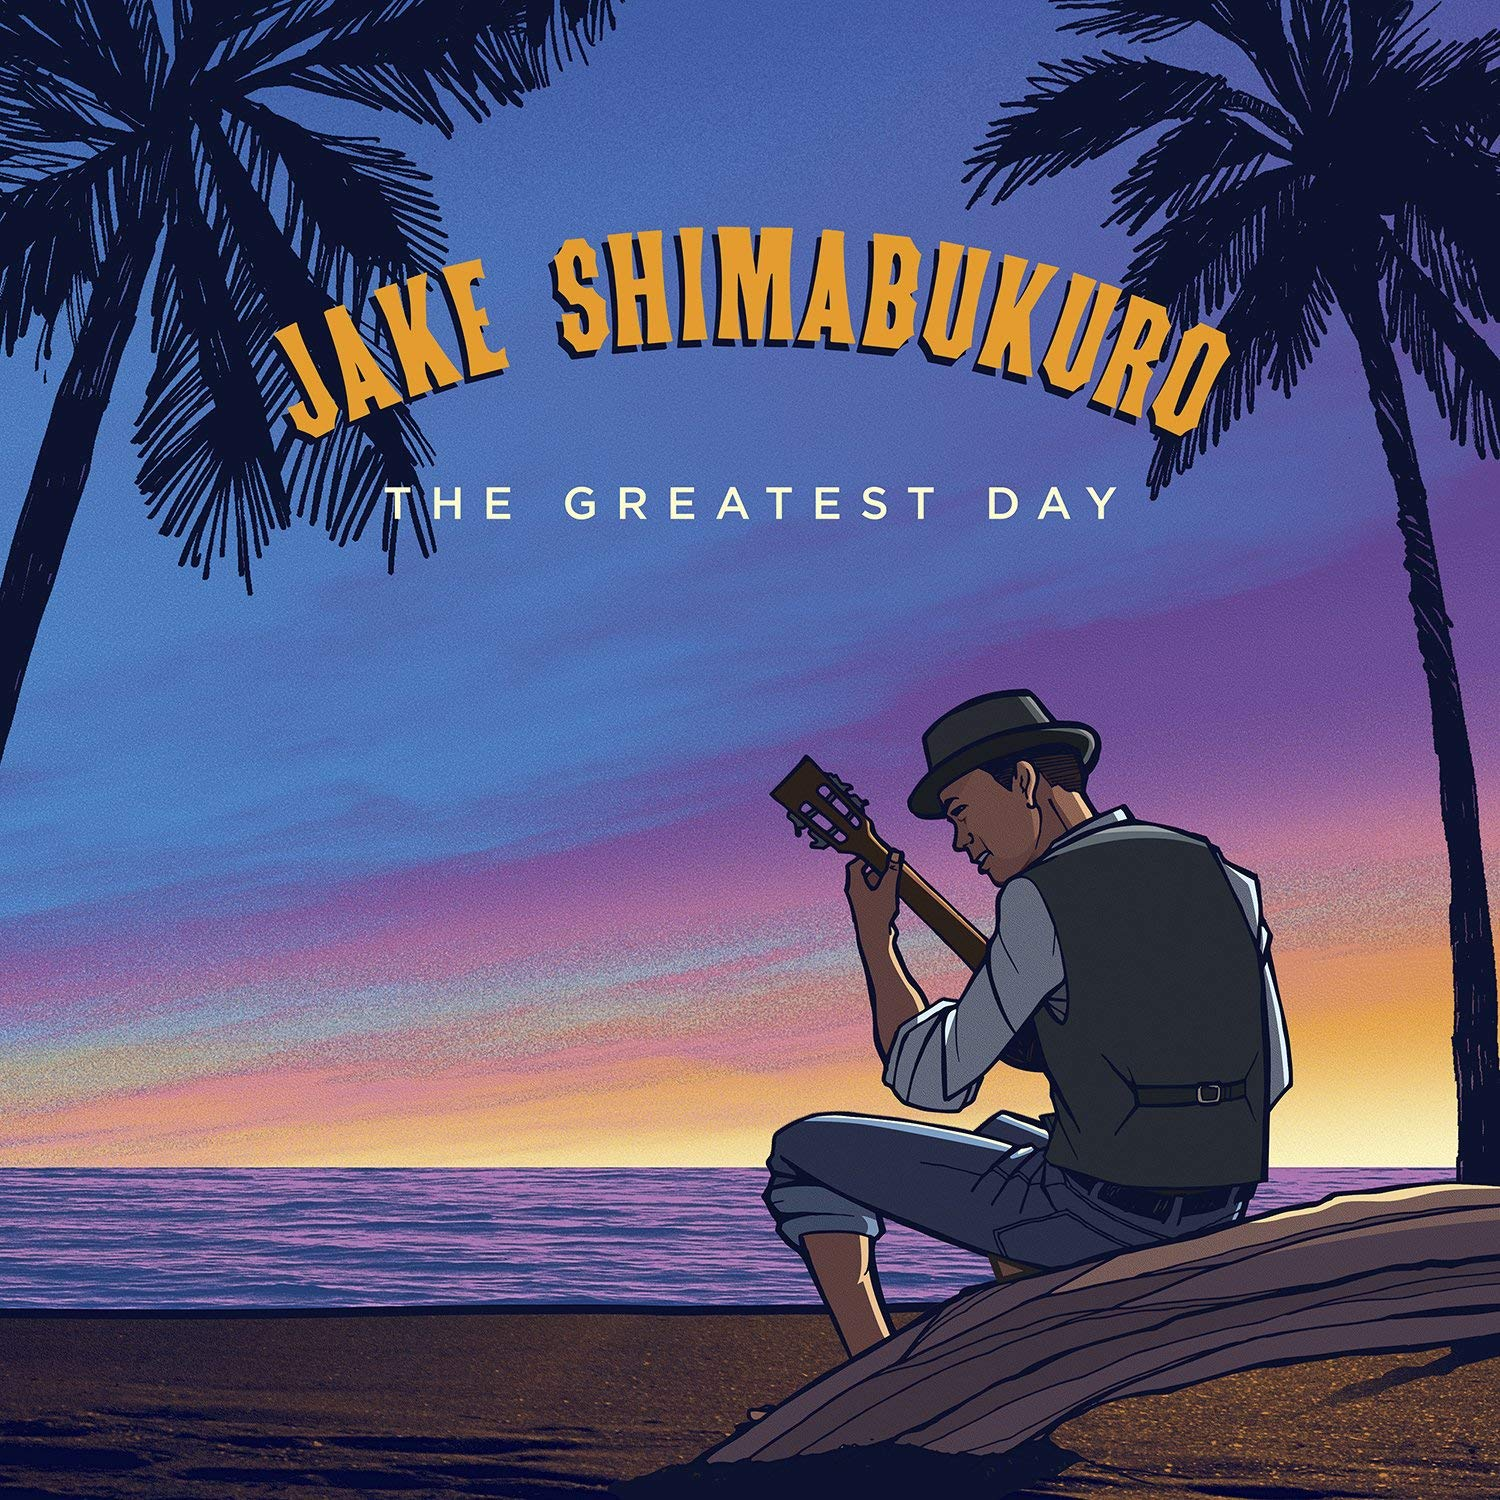 REVIEW: THE GREATEST DAY BY JAKE SHIMABUKURO